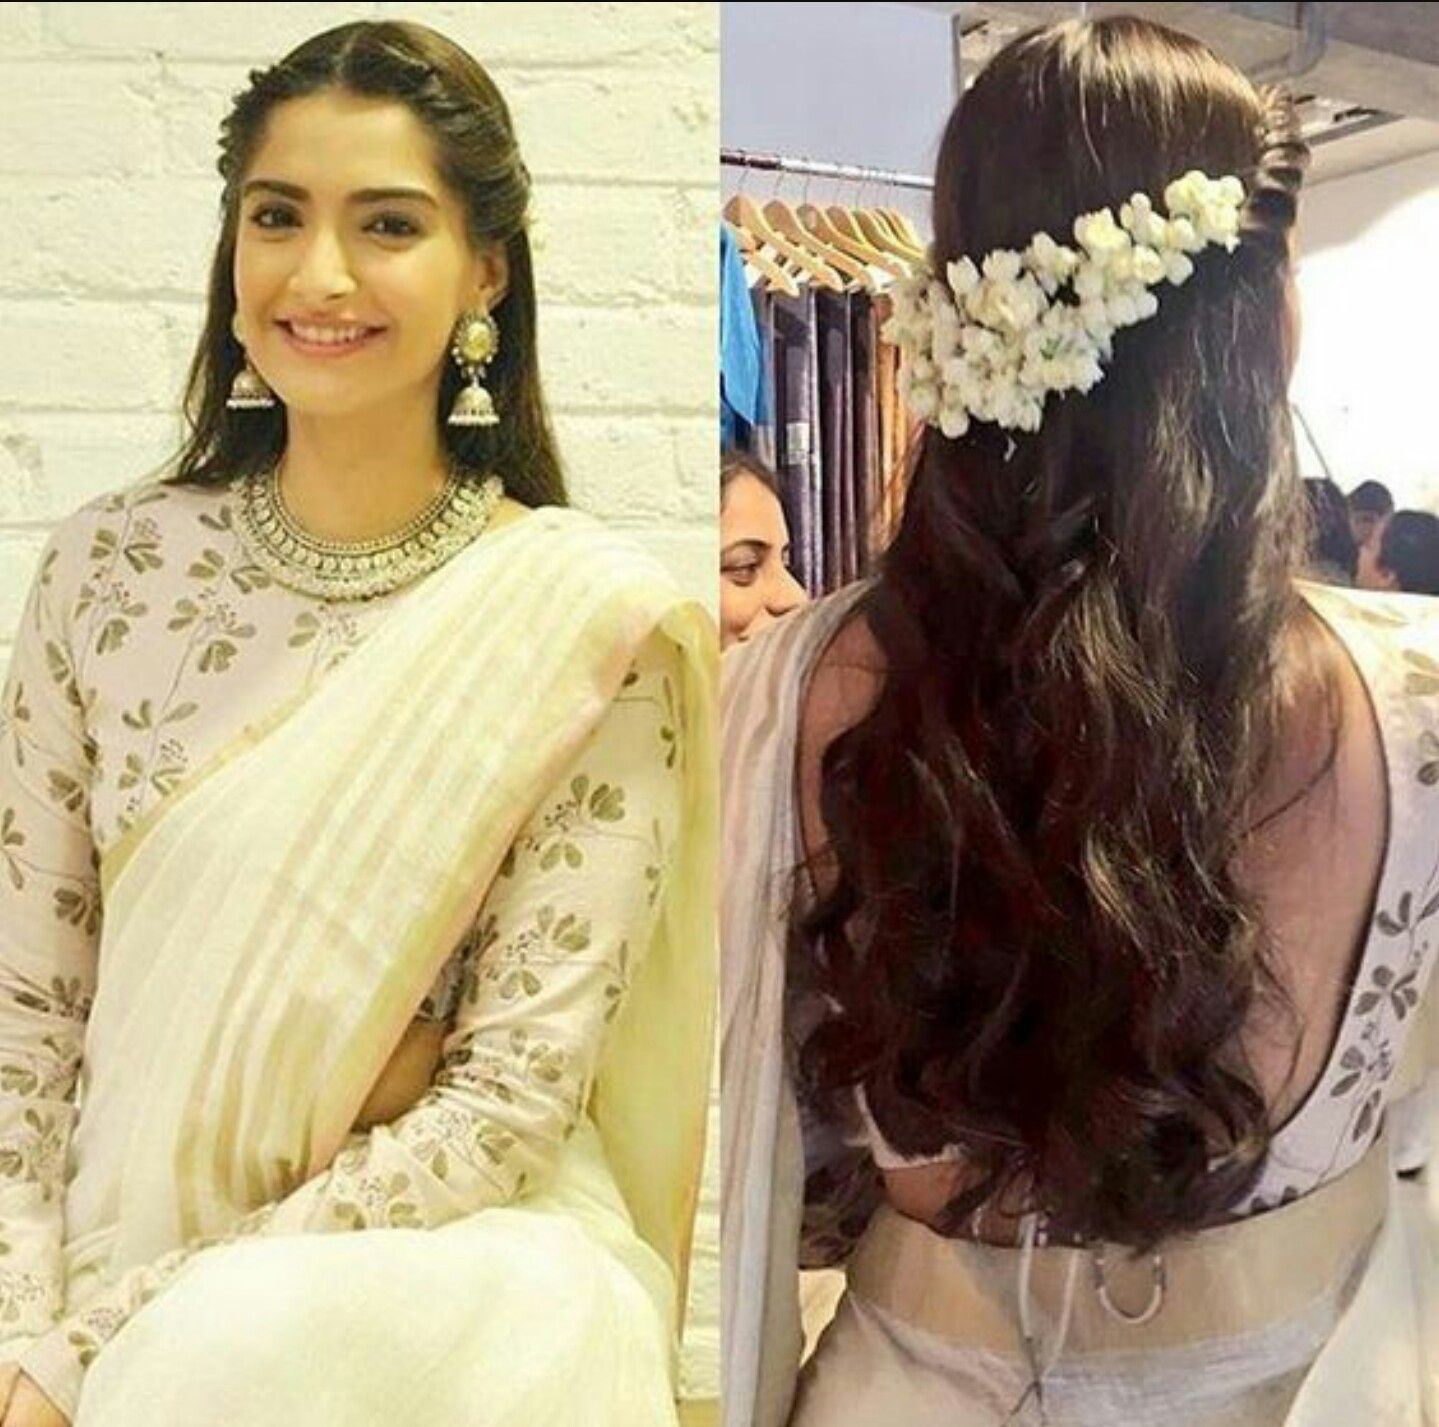 Beautiful modem way of putting jasmine flowers in hair